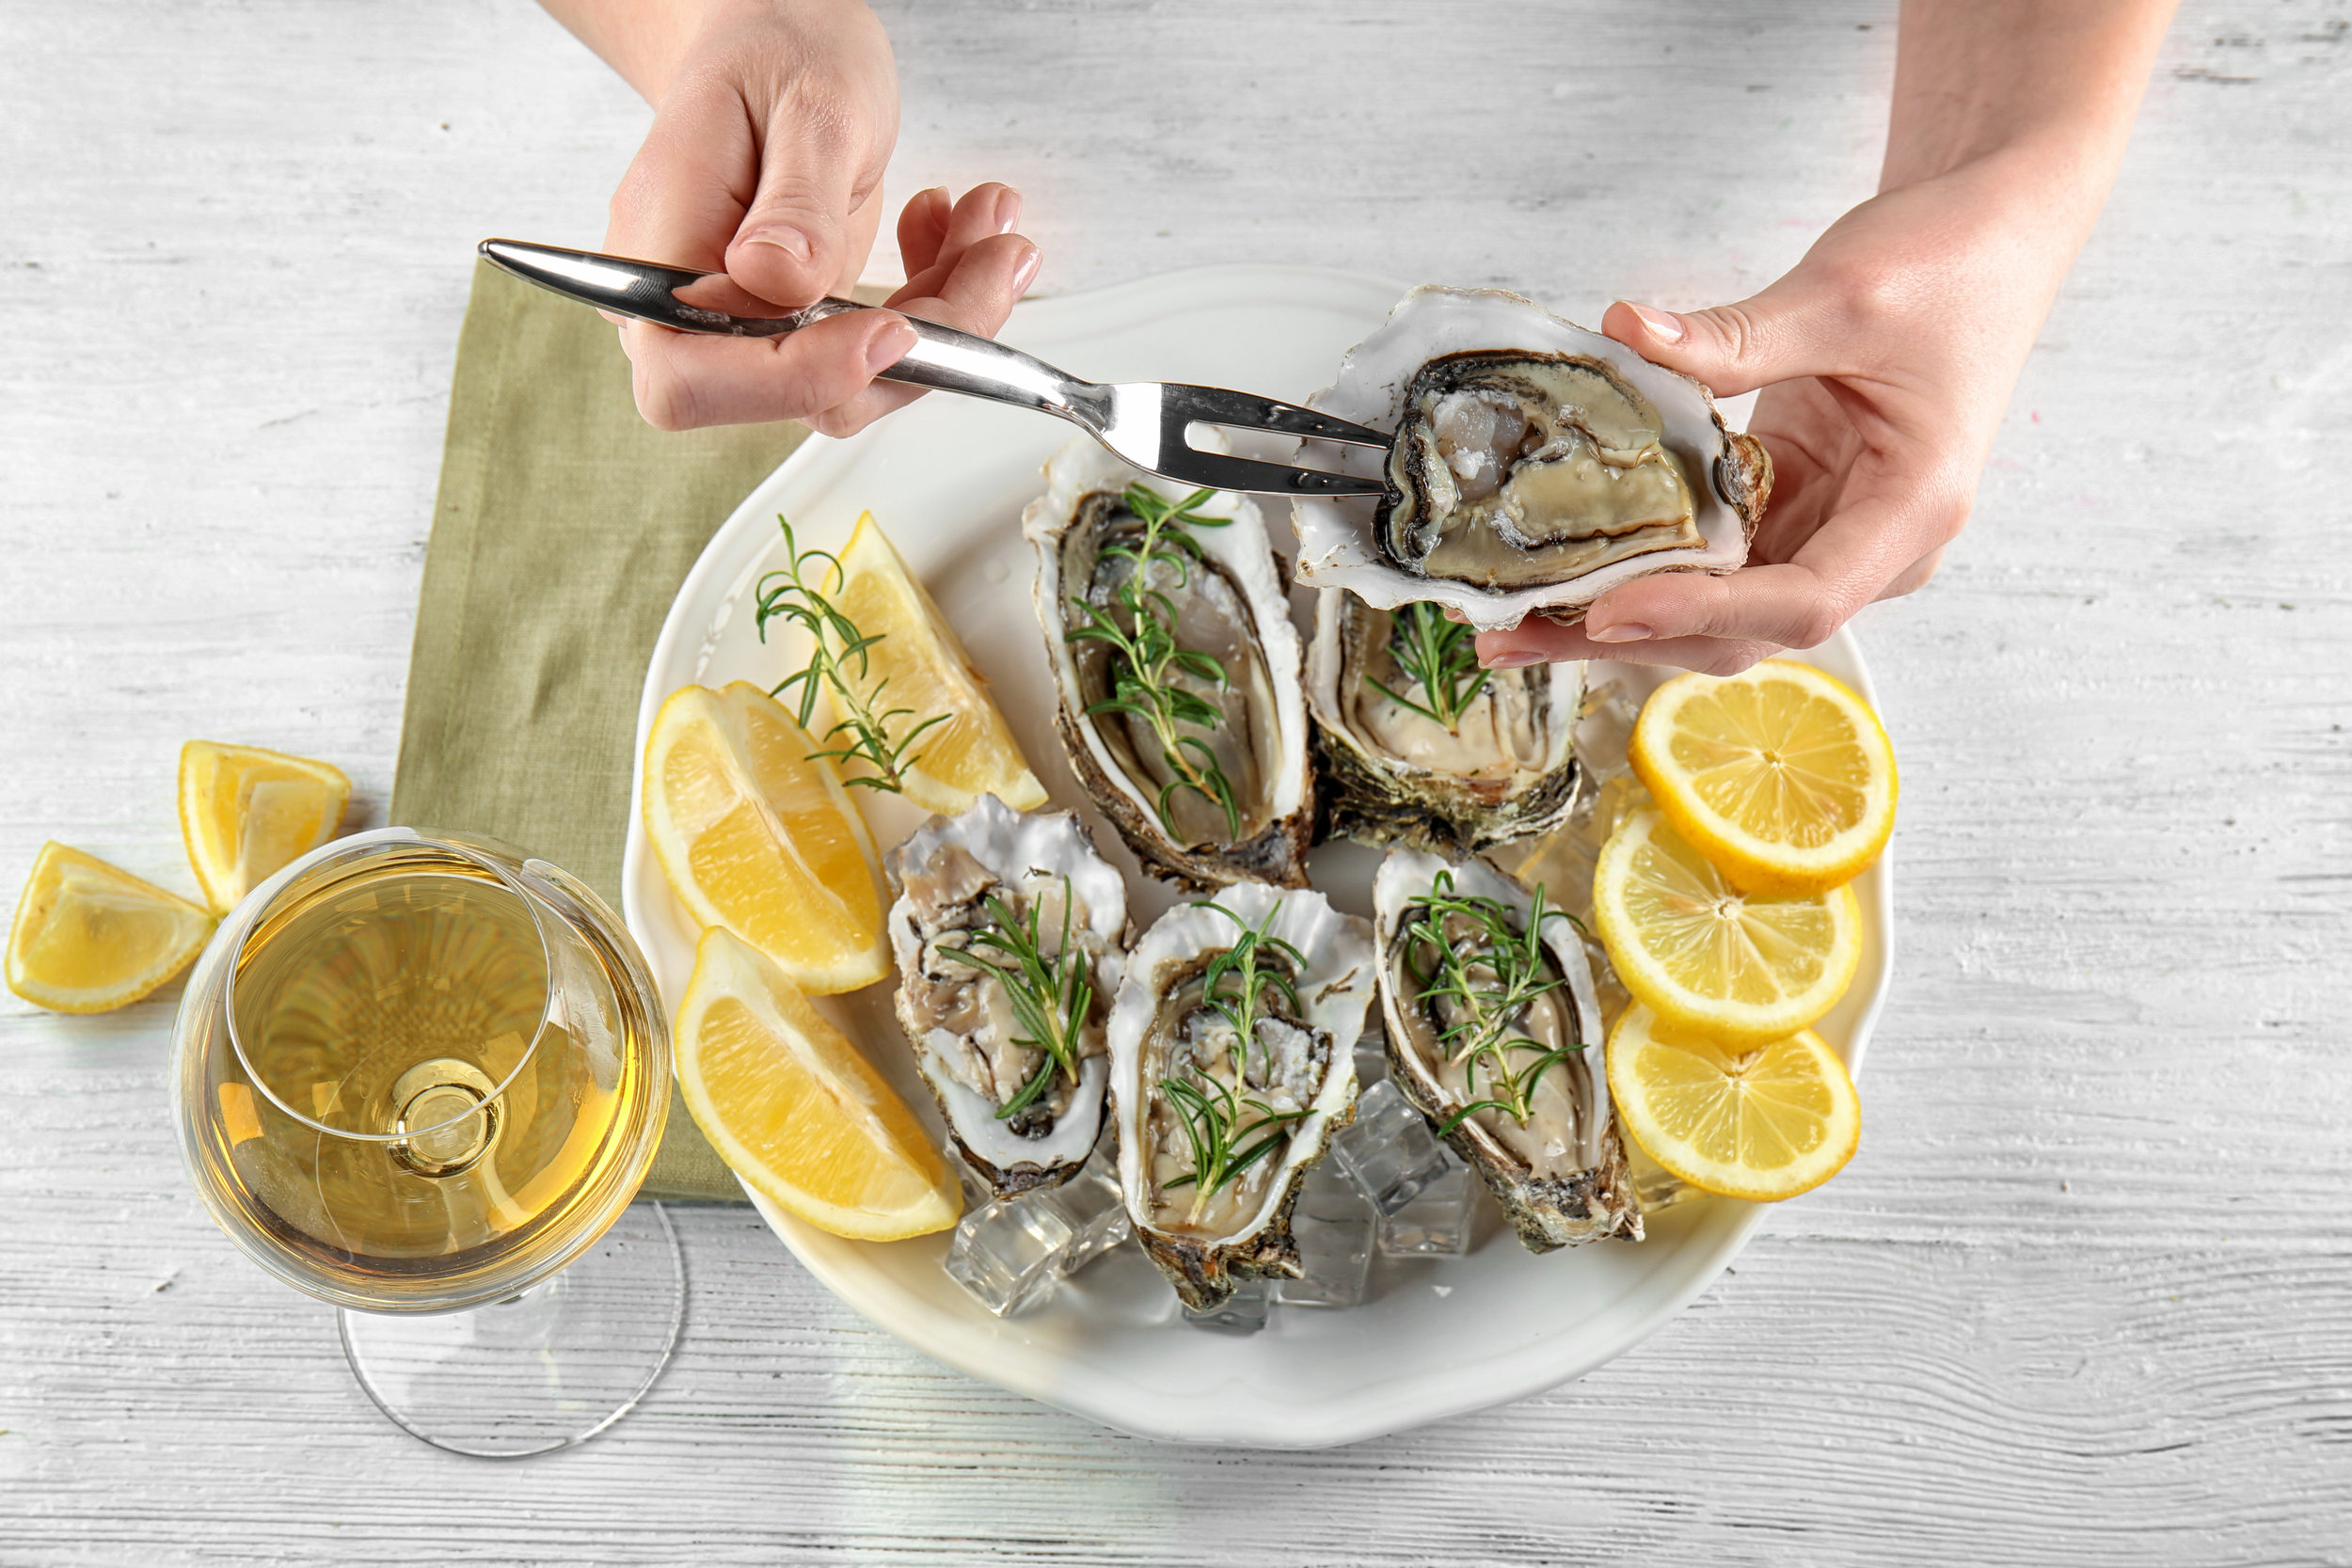 Does conversation do to our minds what oysters do to our bodies?